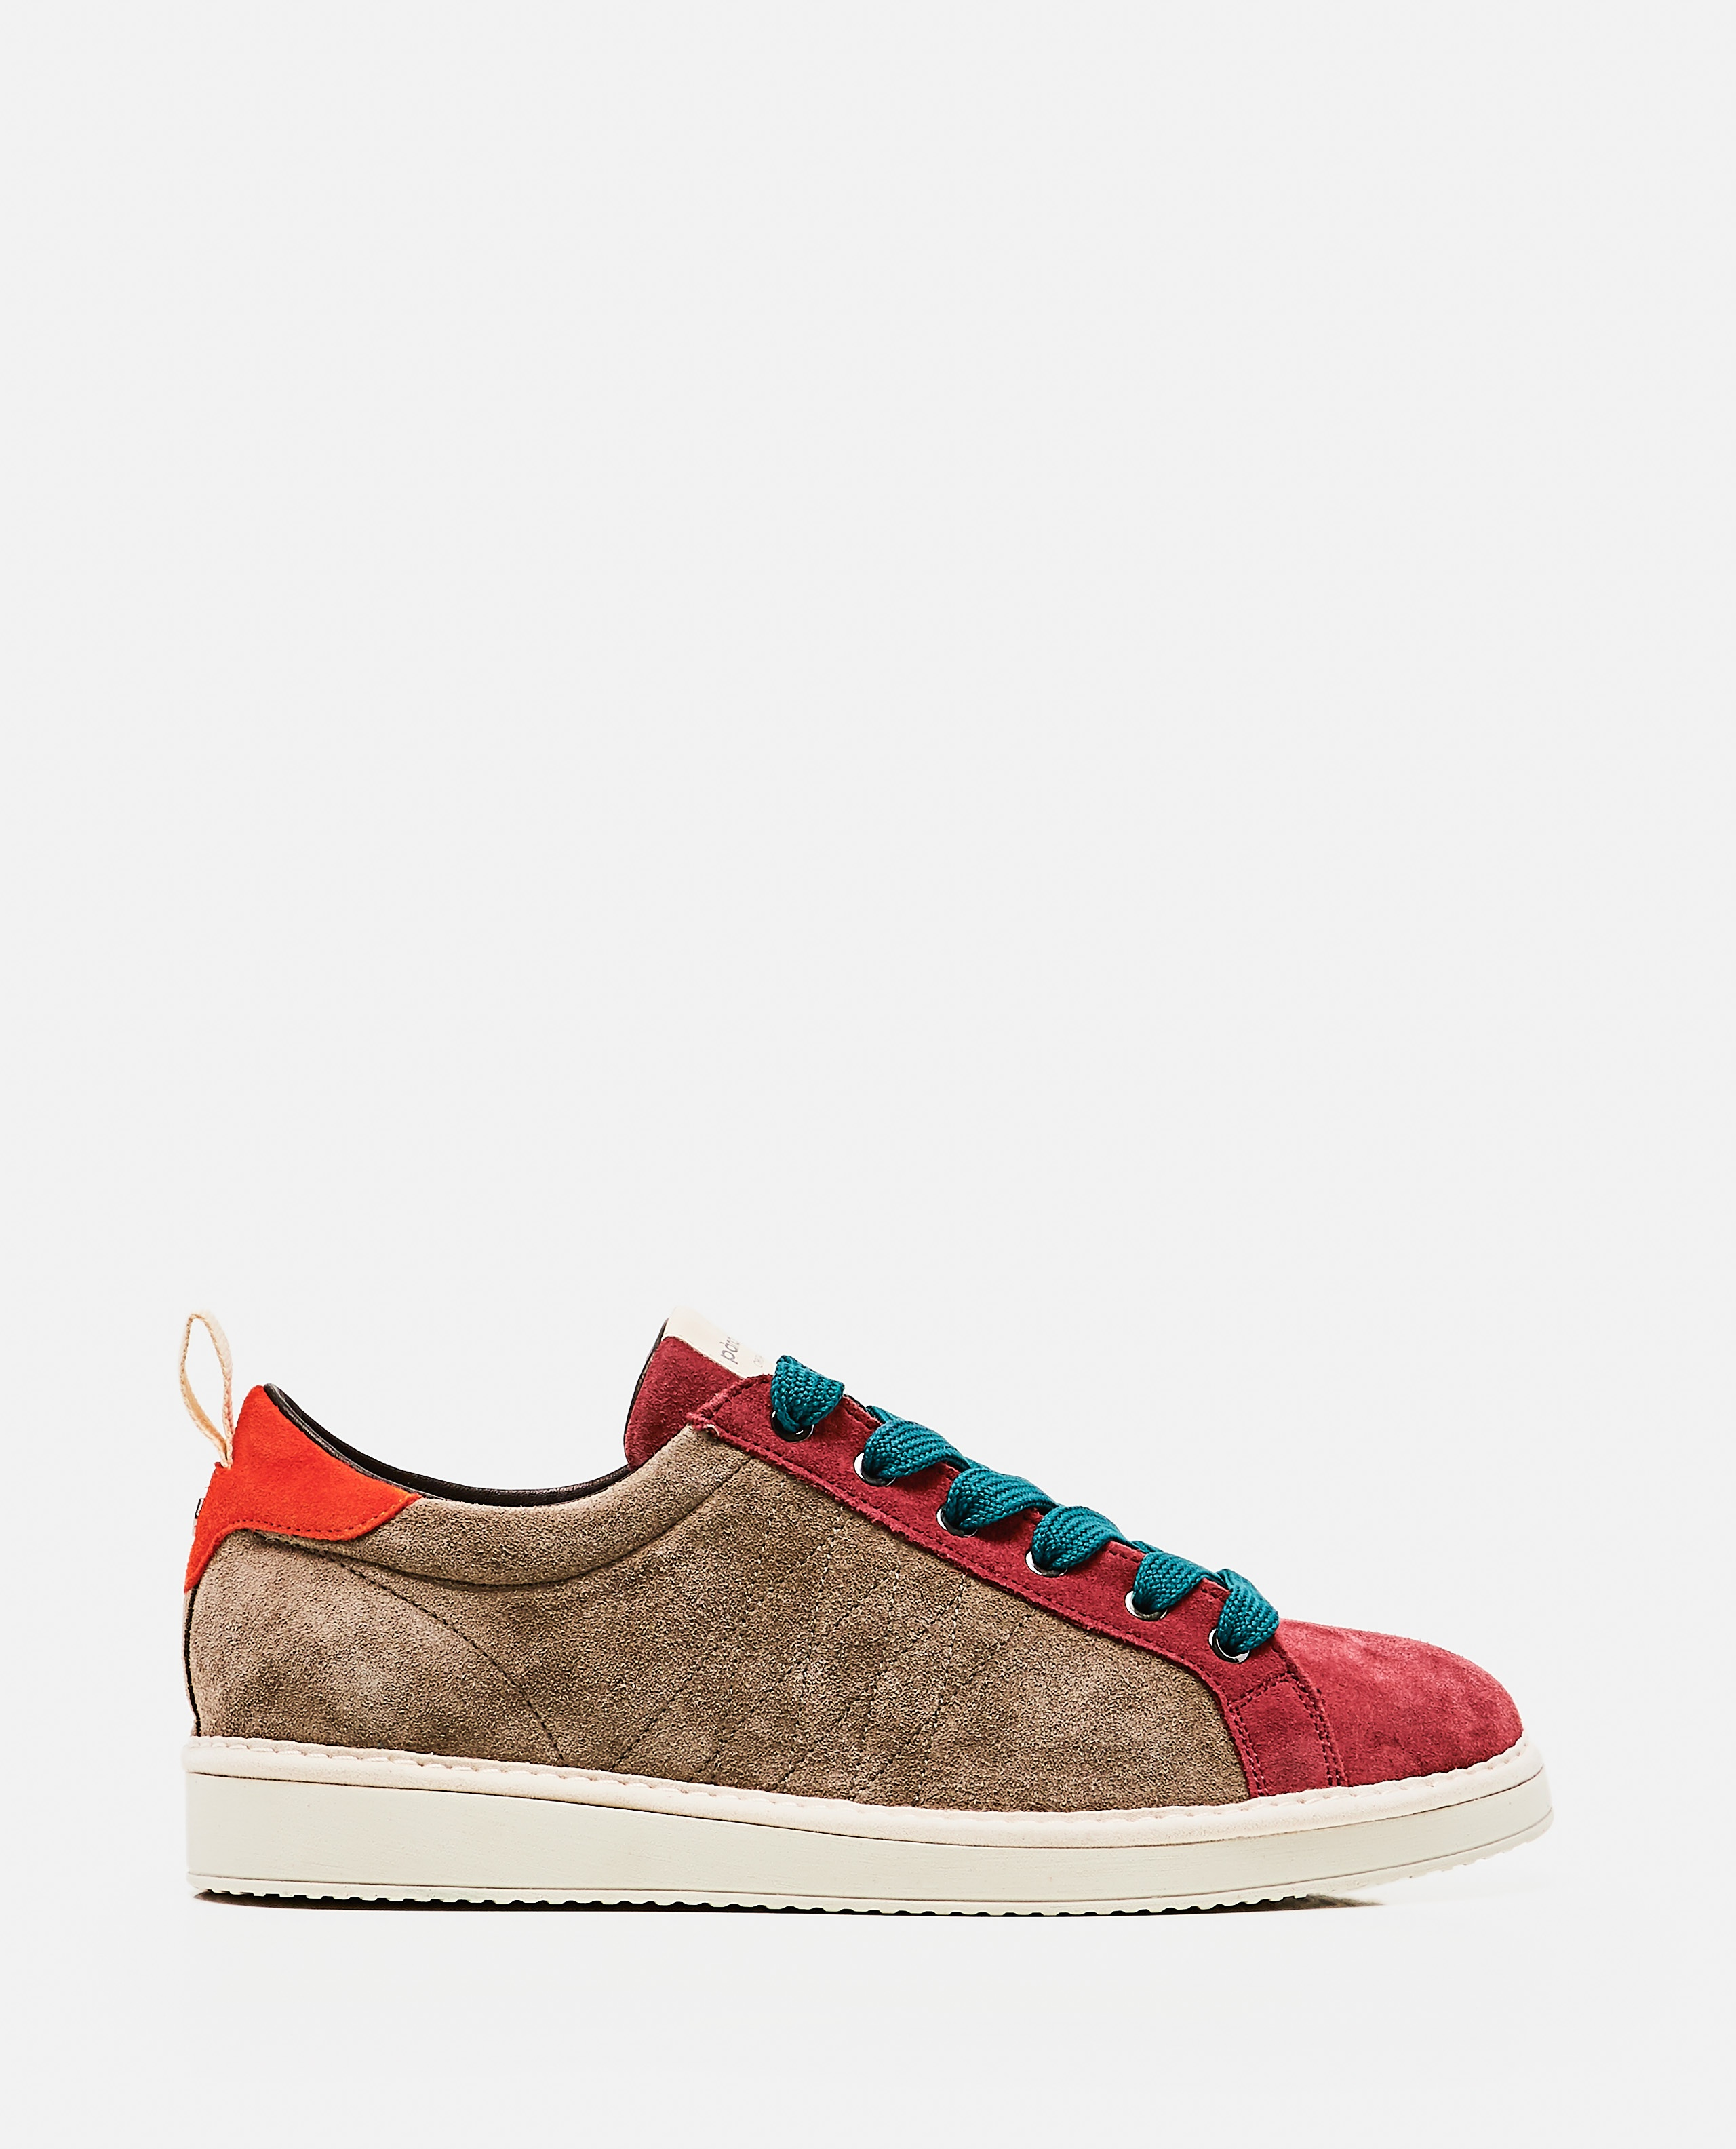 Sneakers in pelle Uomo Panchic 000278450041046 1